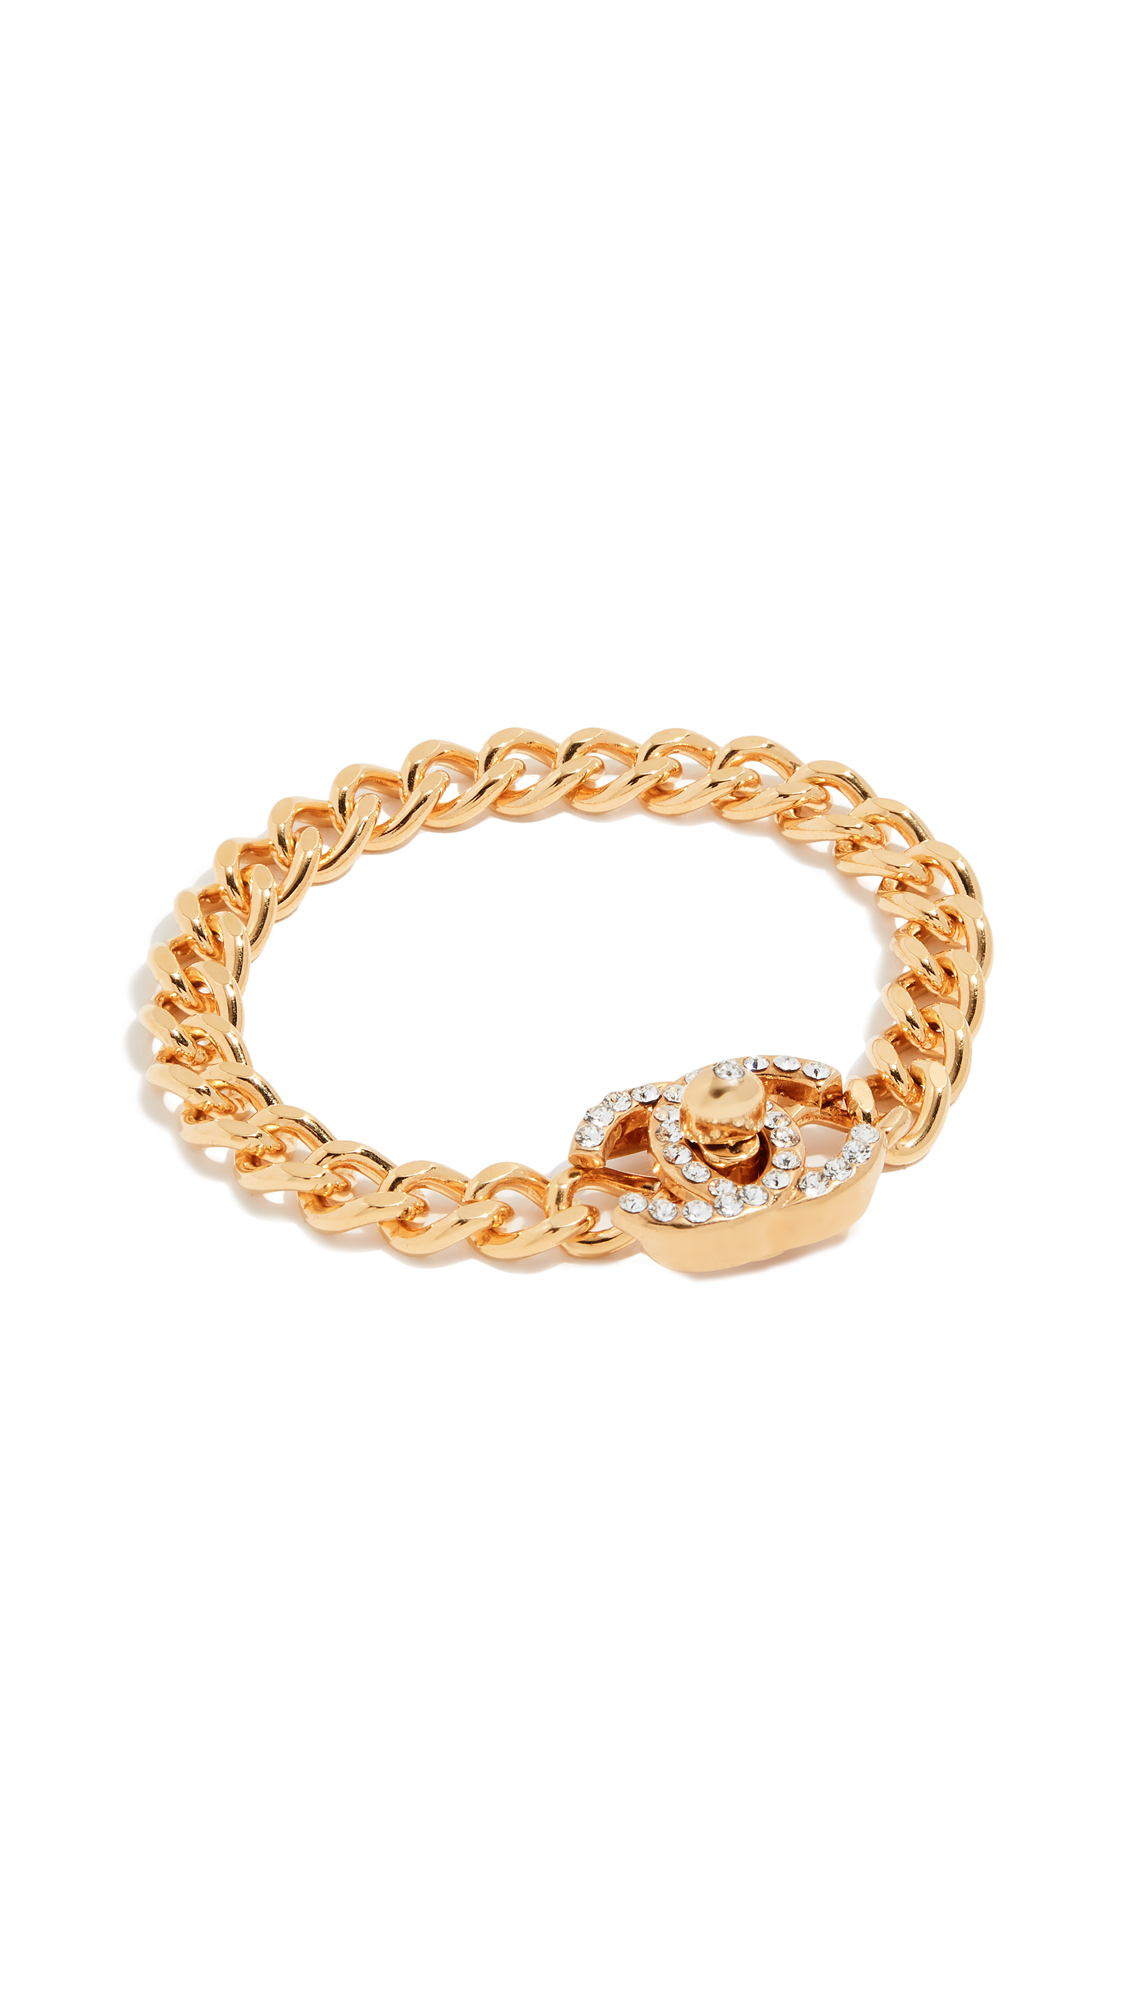 WHAT GOES AROUND COMES AROUND CHANEL SMALL CRYSTAL TURN LOCK BRACELET